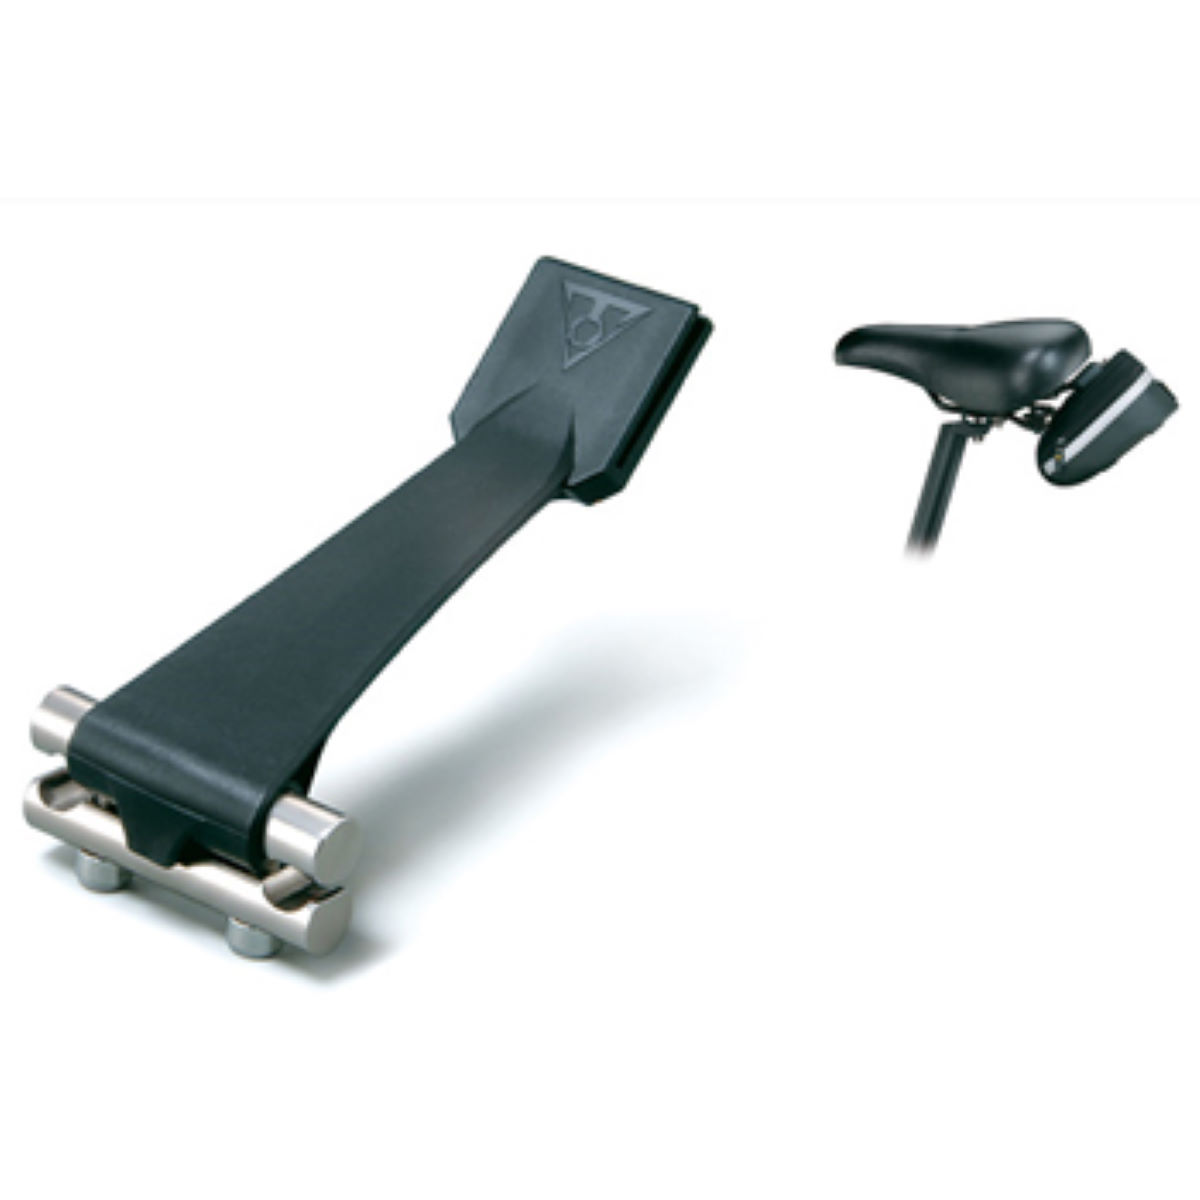 Topeak Fixer F33 Bracket for Saddle Wedge Bags